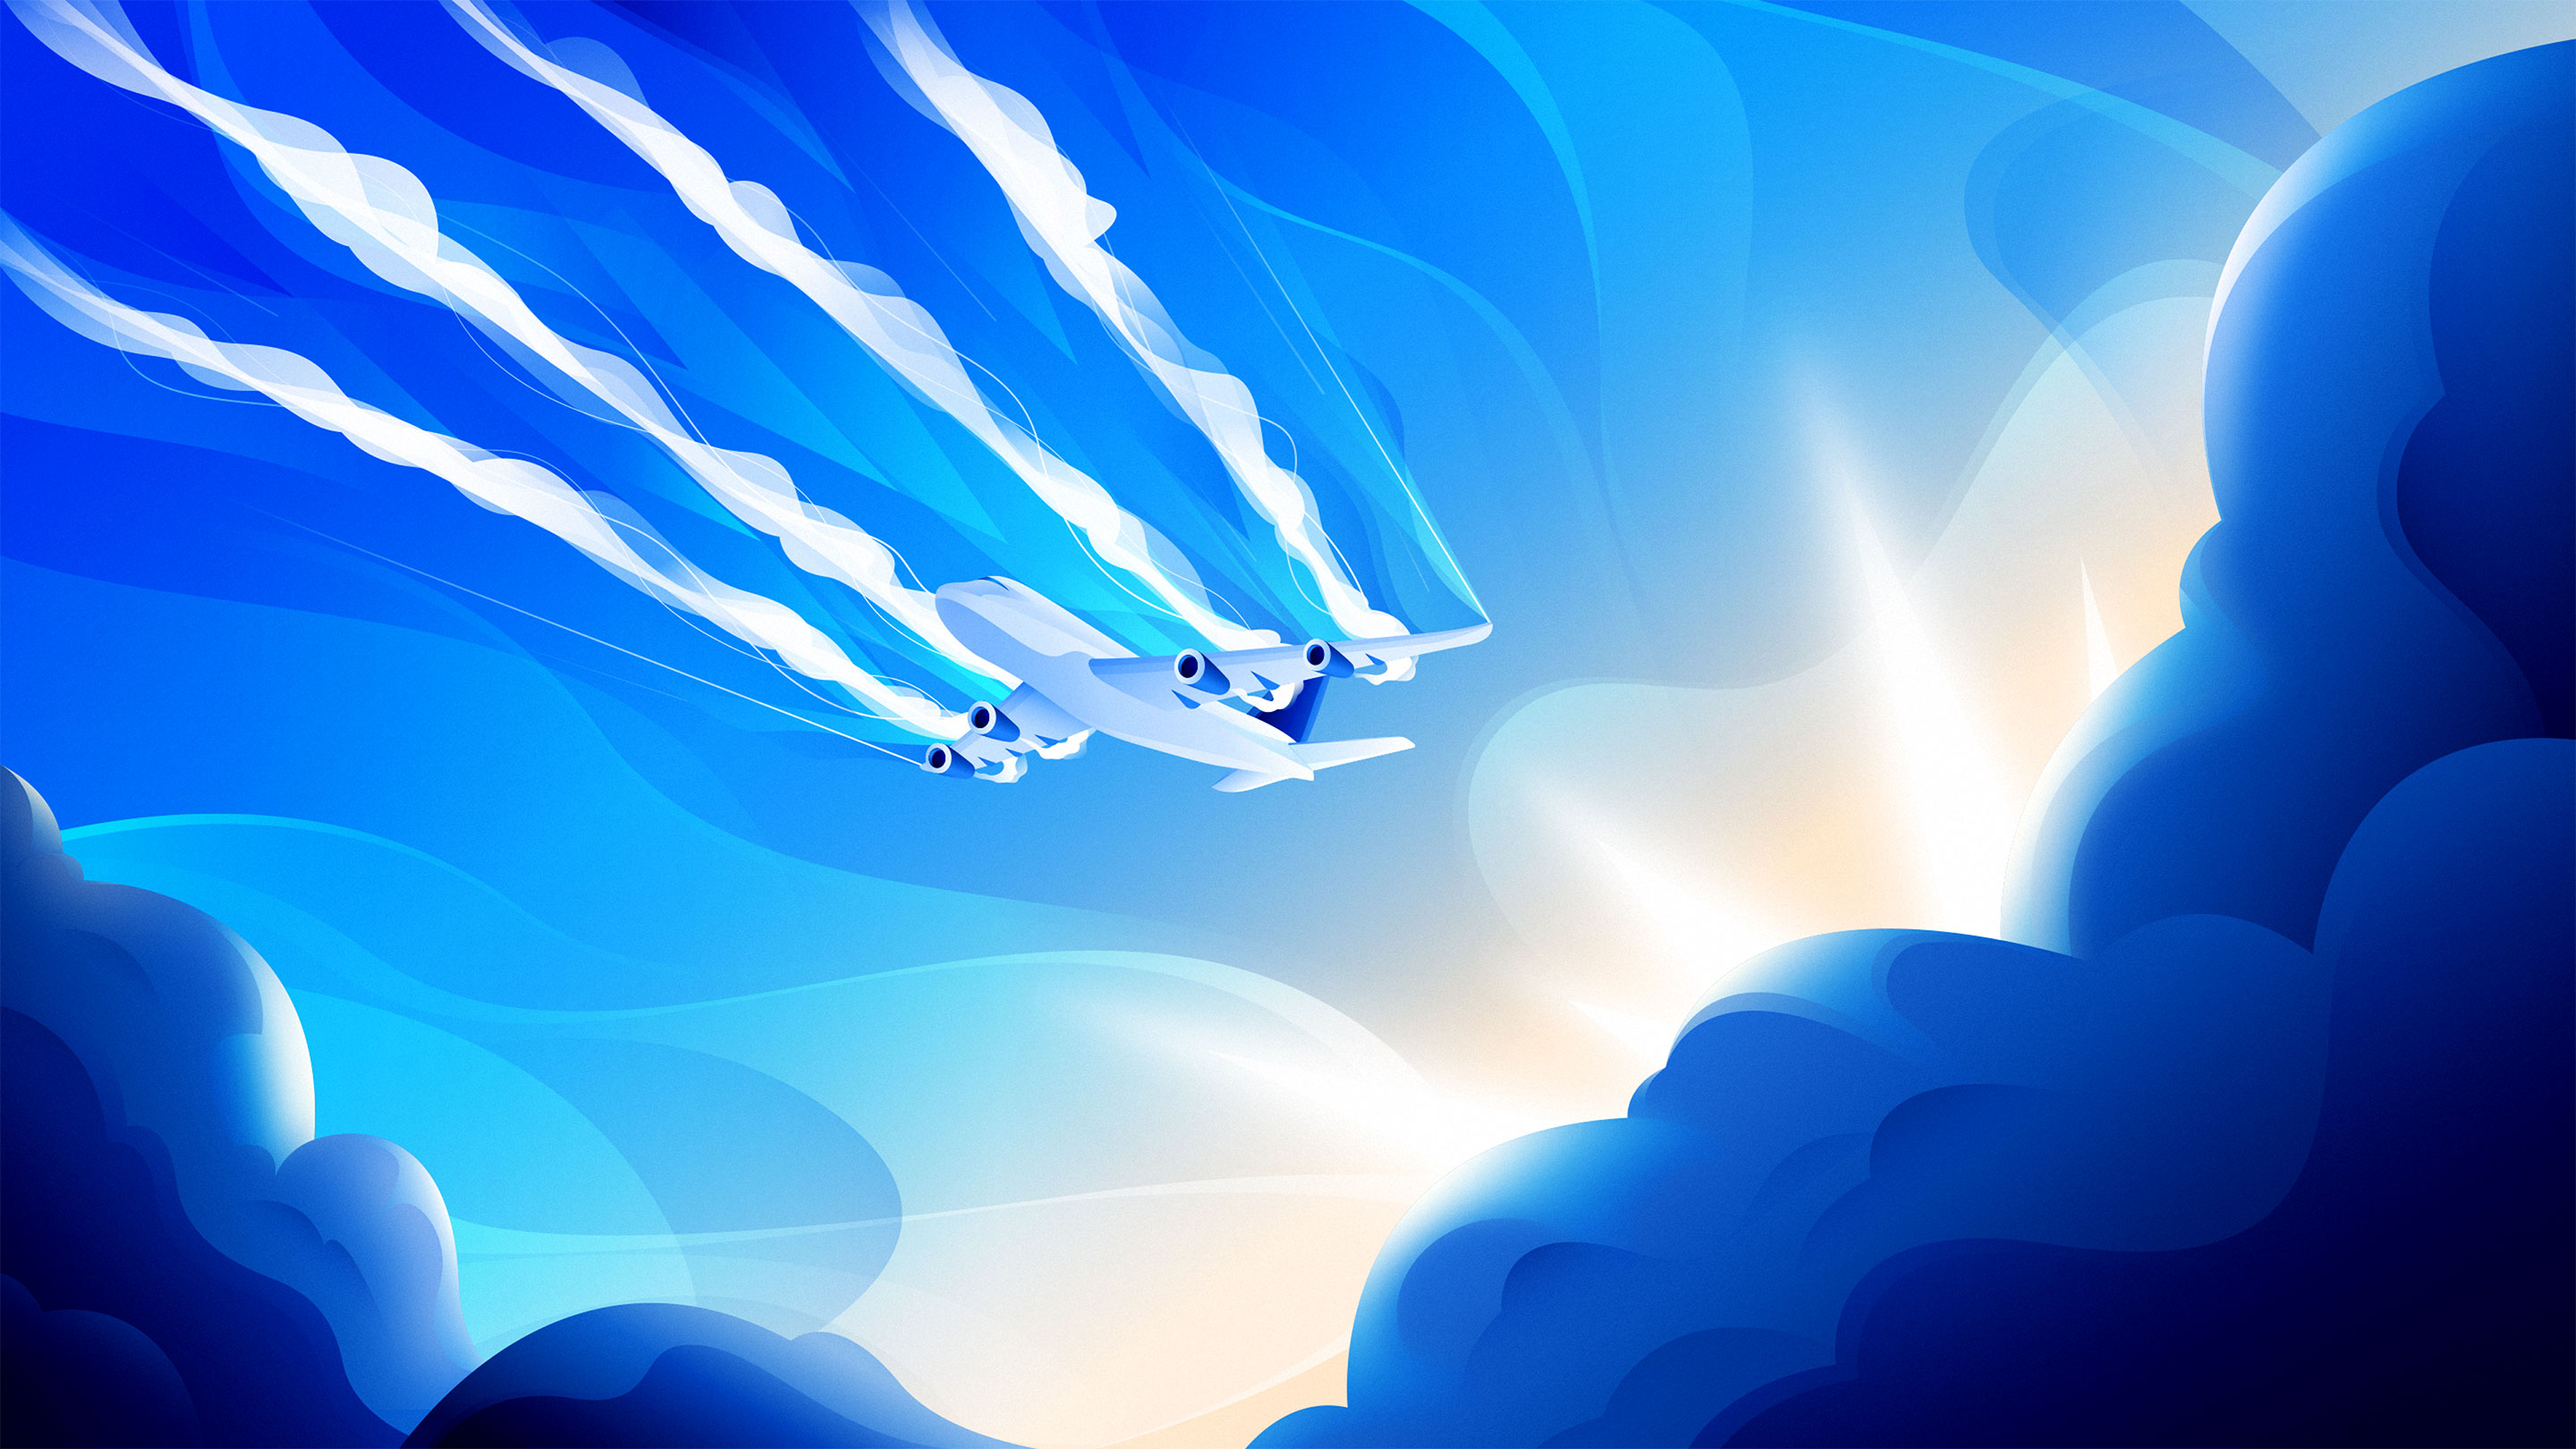 An illustration of an airplane with its contrails coming out in front of it.